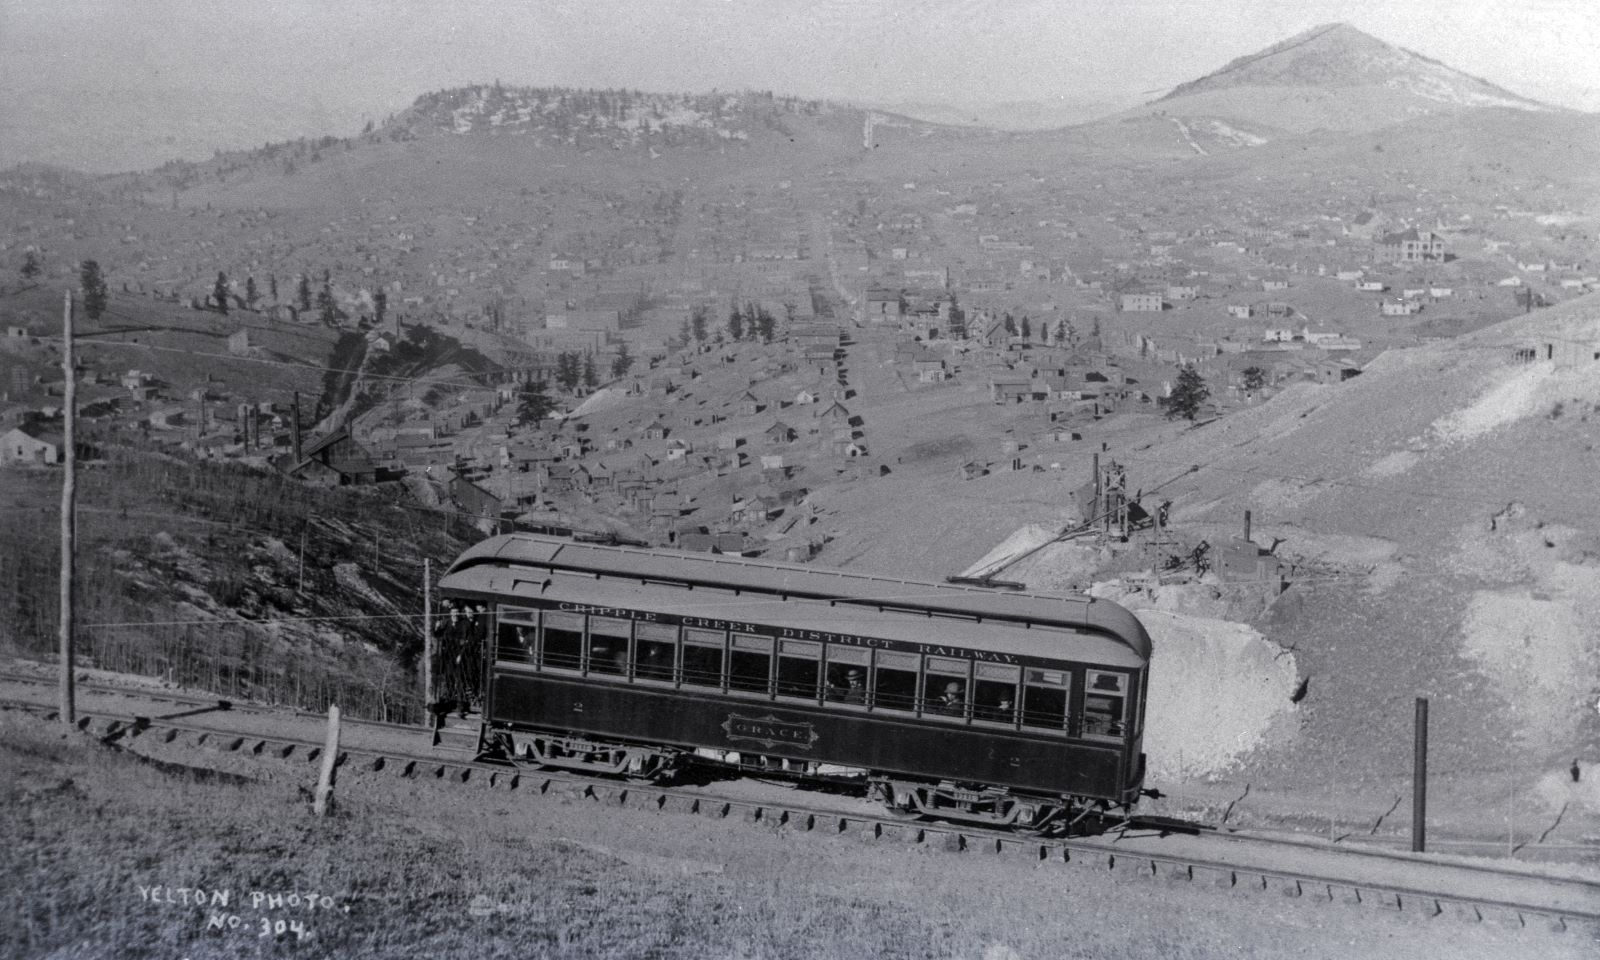 View is a negative type of Photo taken by a camera of an older type of Photograph, with not the best quality film so it is rather grainy sadly. But, the view is nice, of the Trolley car named Grace climbing Gold Hill high above Poverty Gulch, along the original steep High Line grade. * The Smokestack poking up near lower right-hand corner behind the Trolley is part of the Chicago Tunnel operation, while the two Head-frame type of mine operations seen just above the lower end/back end of the Trolley is as far as I can tell operations on the May Queen lode claim on the left and the Granite Hill lode claim on the right. * About middle top/down and about 1/4 in from left-hand side is the structures of the Abe Lincoln Mine, and way down in the gulch one see the M.T. Wye Trestles and to the left of them is the spur to the top of the Midland Sampler seen cutting up the hill from a spur a little down from the Abe Lincoln.